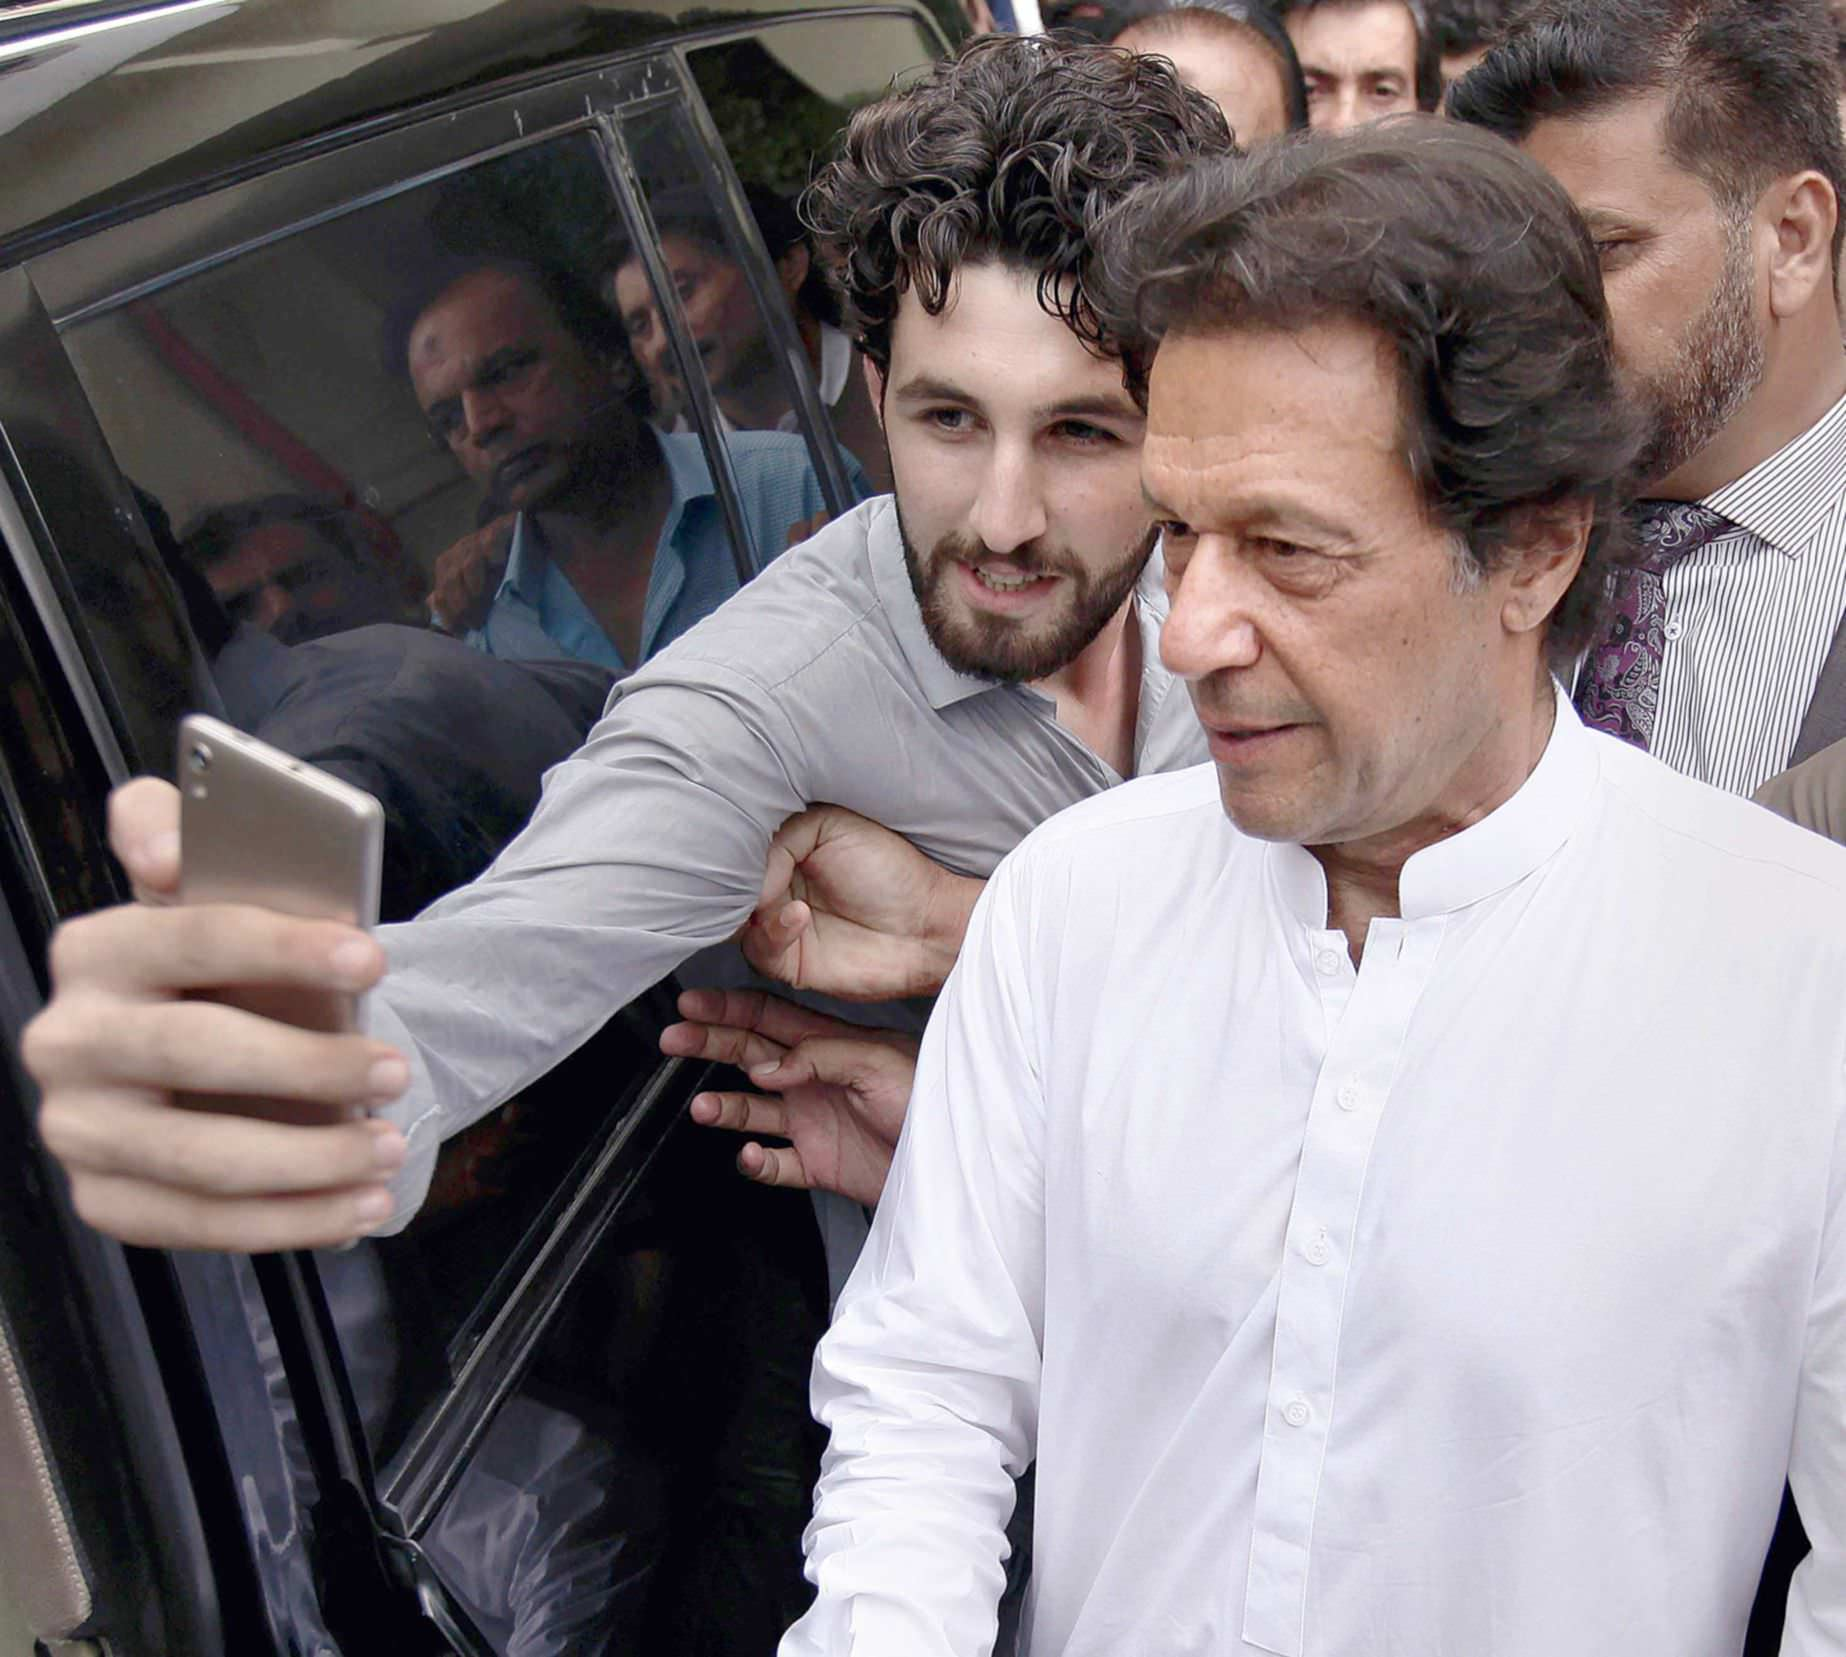 Imran: An Intense, Intimate Encounter